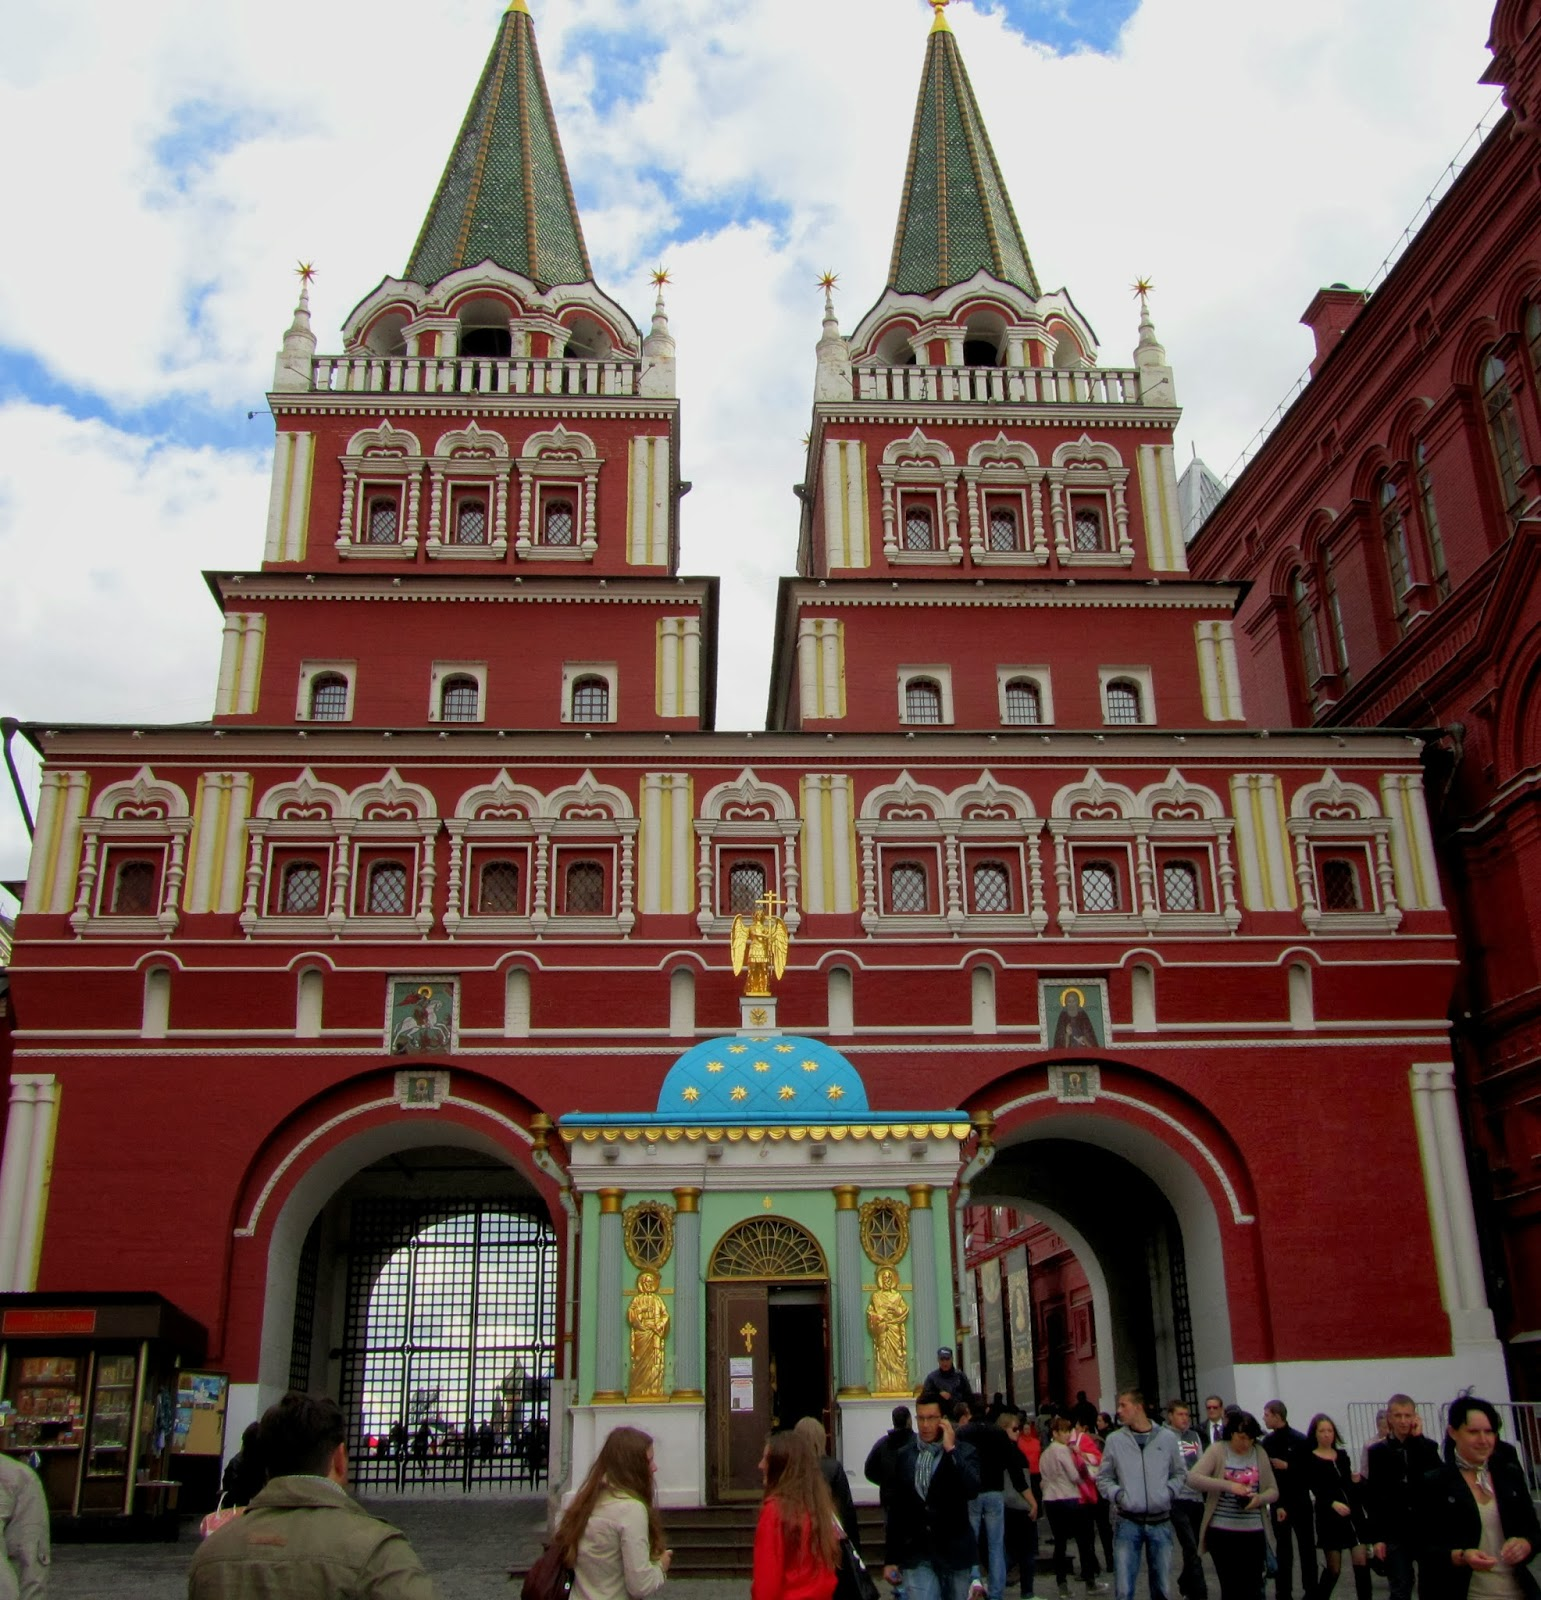 Resurrection Gates Moscow, Pritam Rohila Travels: 2012, SEPTEMBER 7: RUSSIA, MOSCOW - RED SQUARE